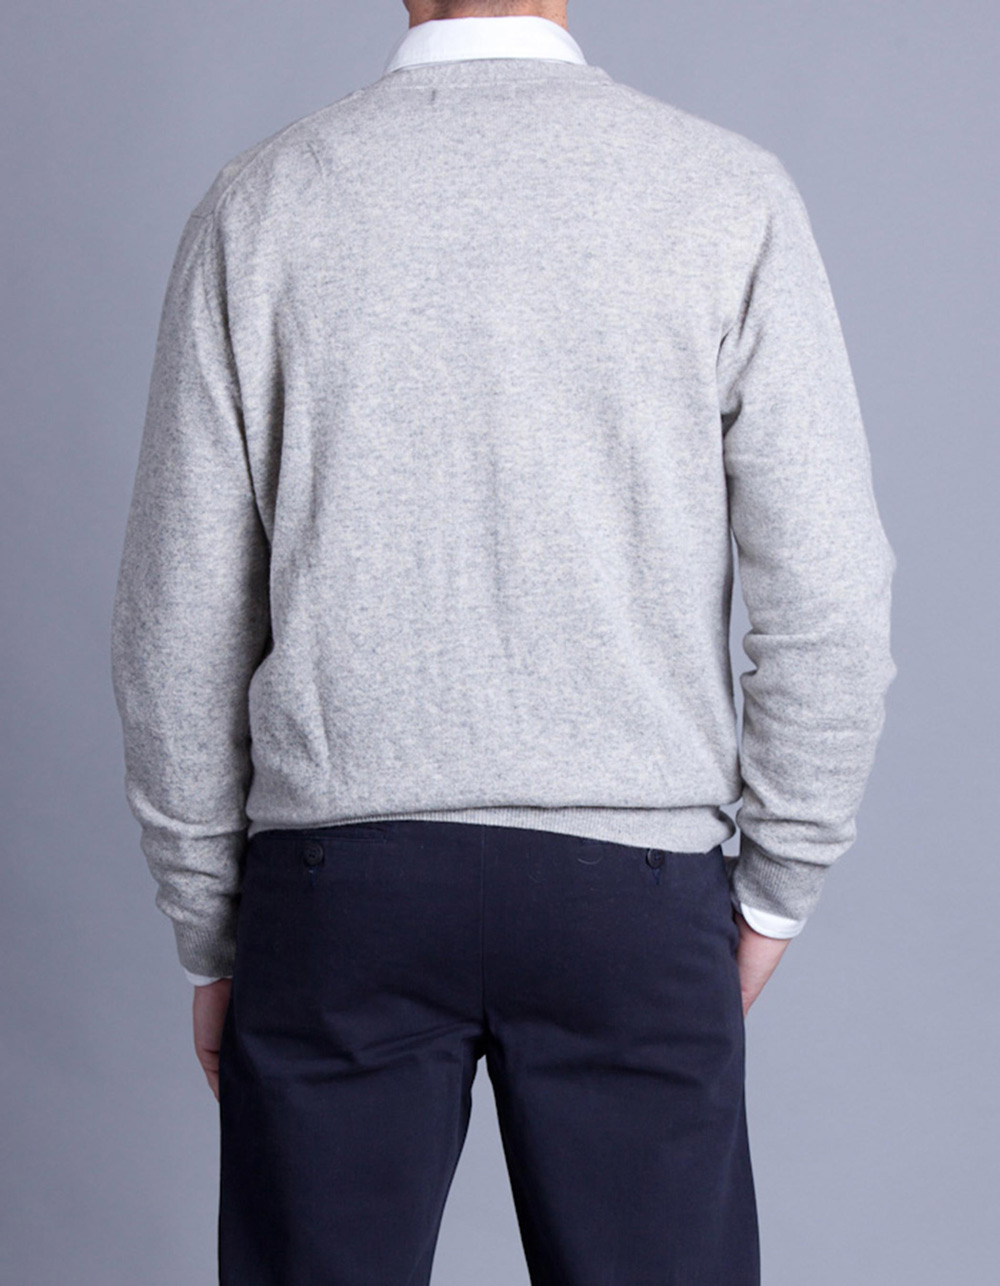 Light grey cardigan - Backside